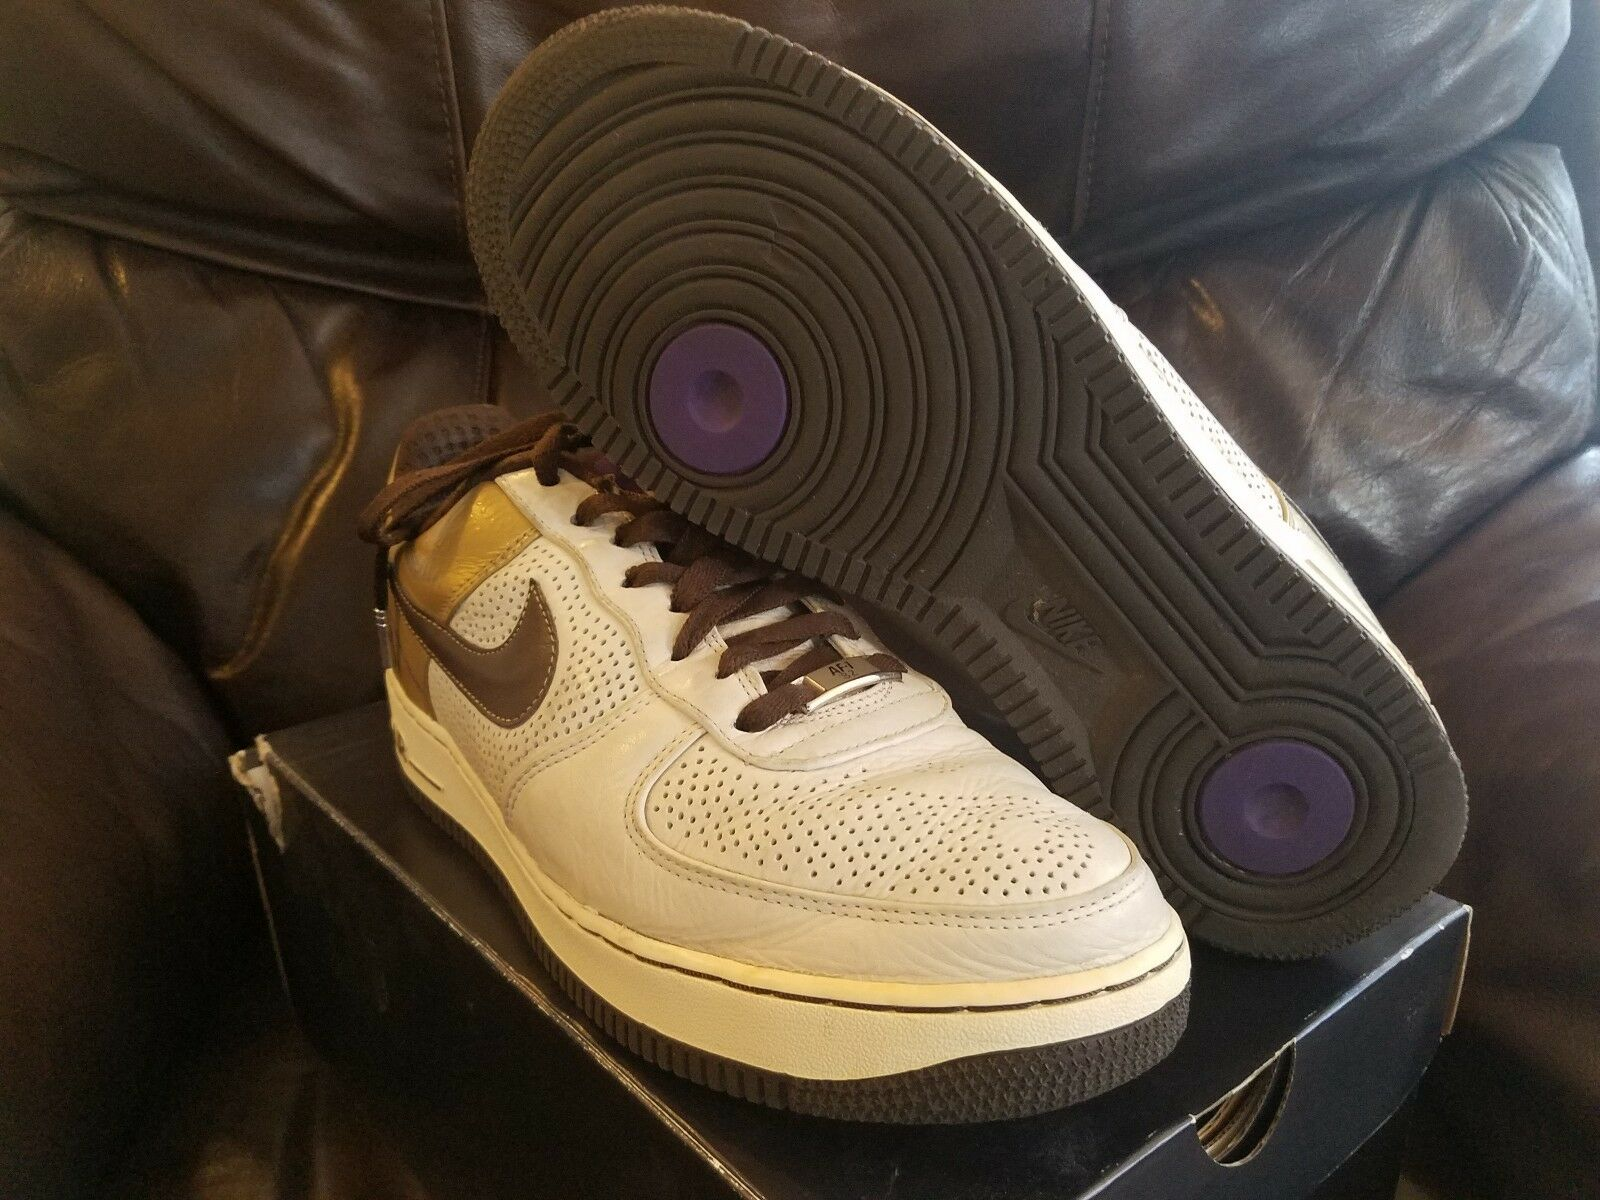 2007 Nike Air Force 1 One Premium '07 Michael Cooper Original 6 Six Yin Yang New shoes for men and women, limited time discount